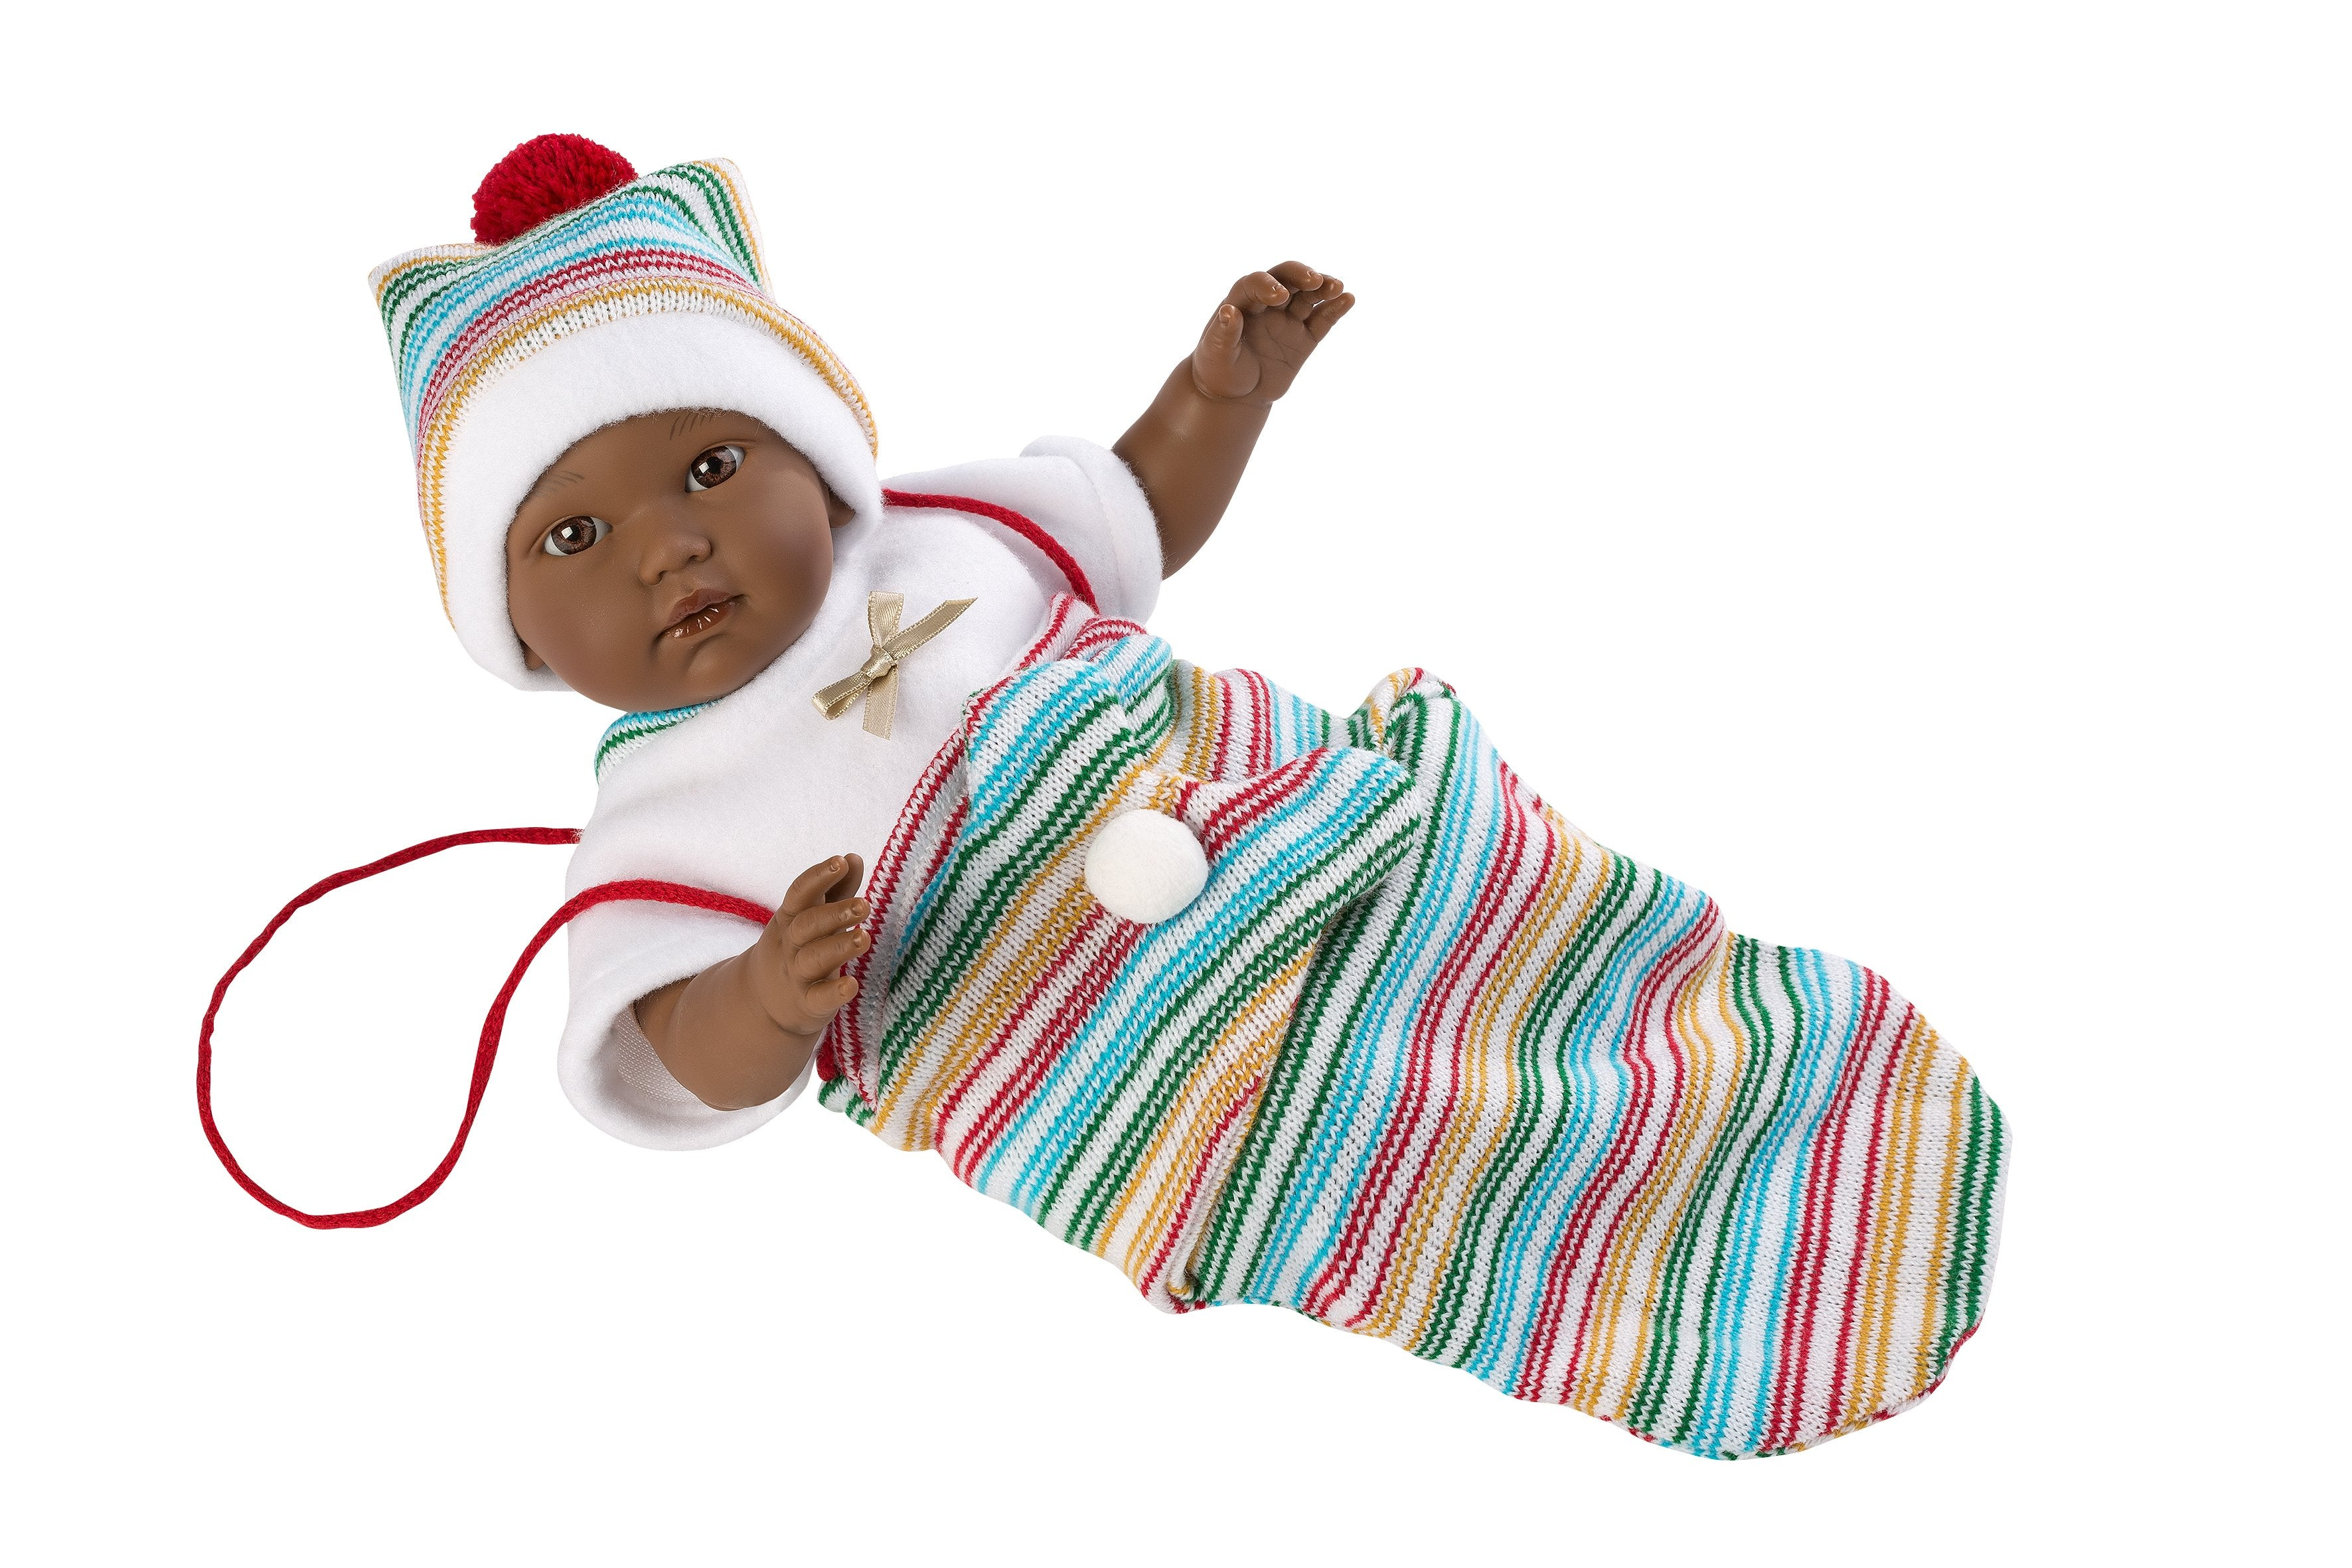 "PRE-ORDER: Morgan 11"" Soft Body Crying Baby Doll"